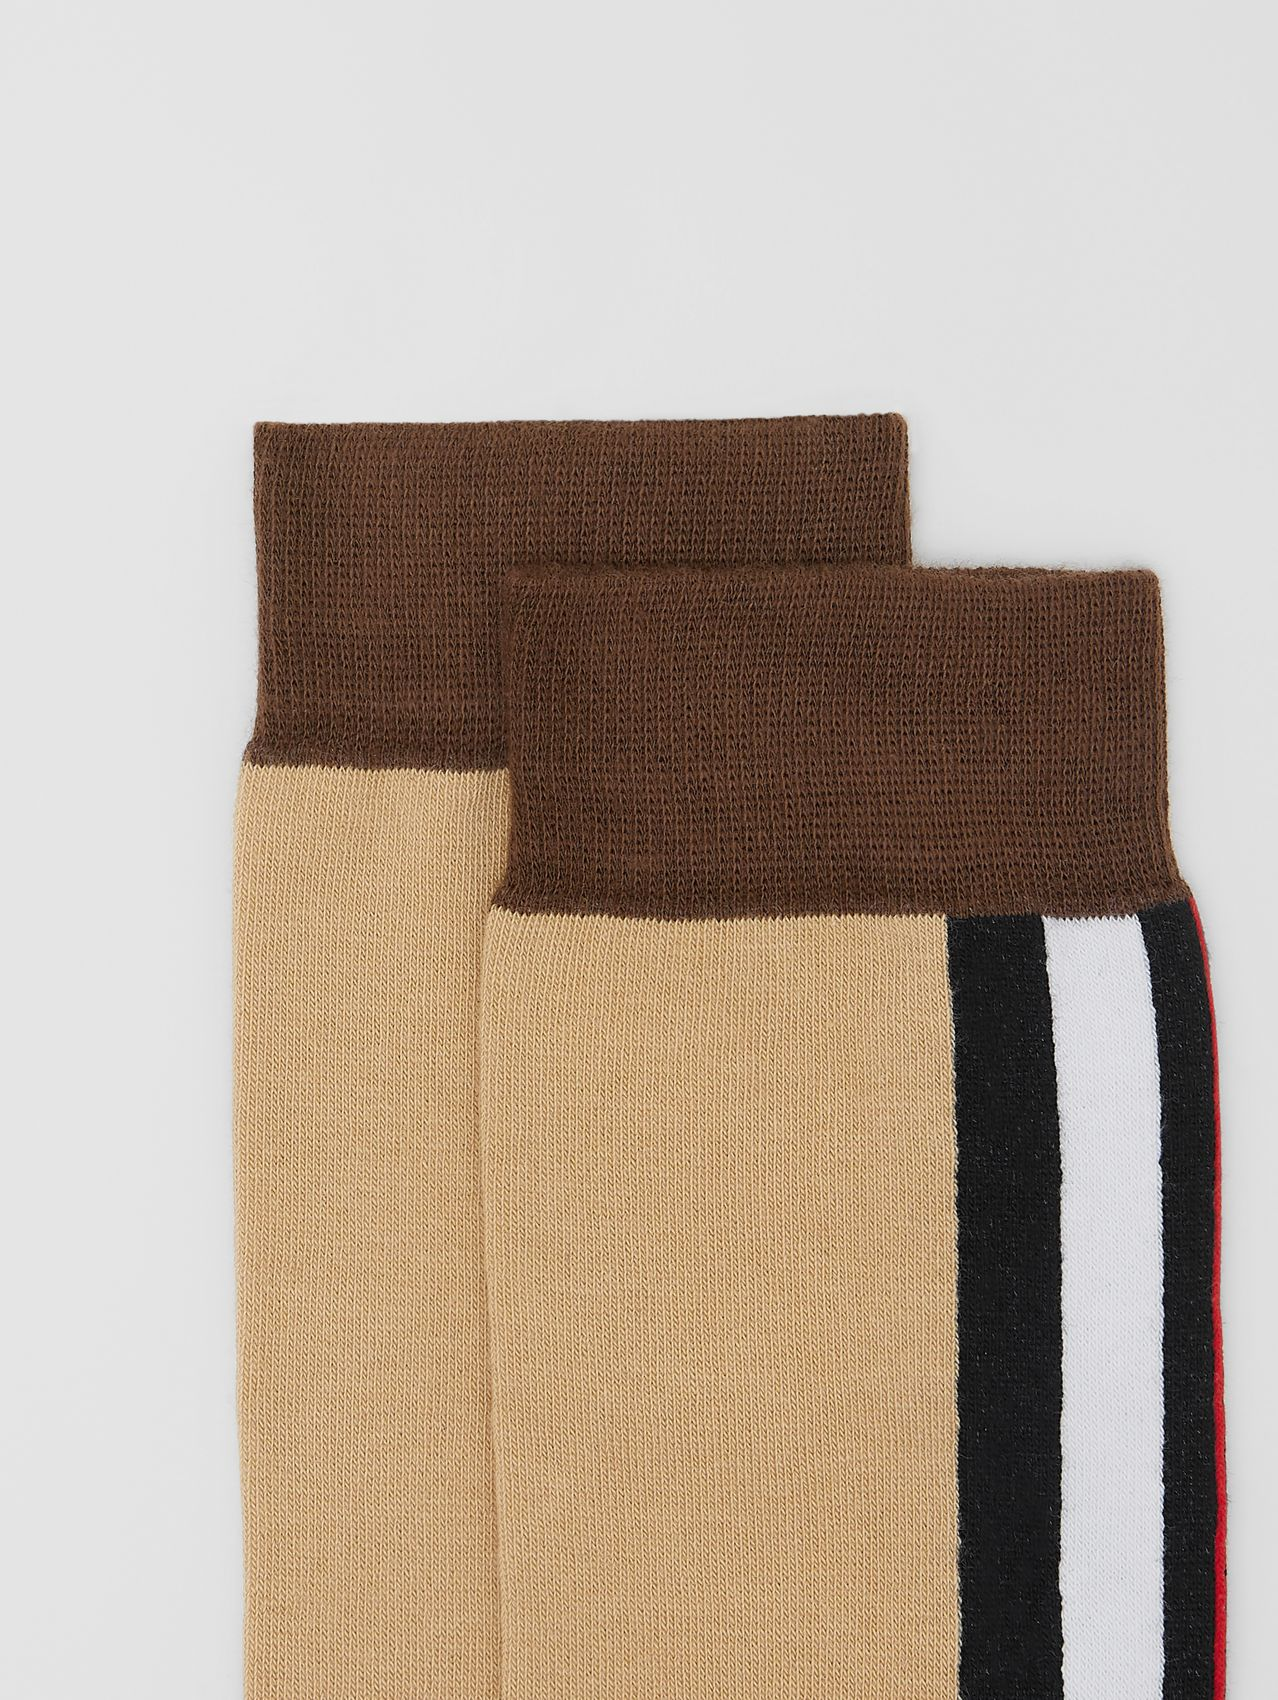 Stripe Intarsia Cotton Blend Socks in Bridle Brown